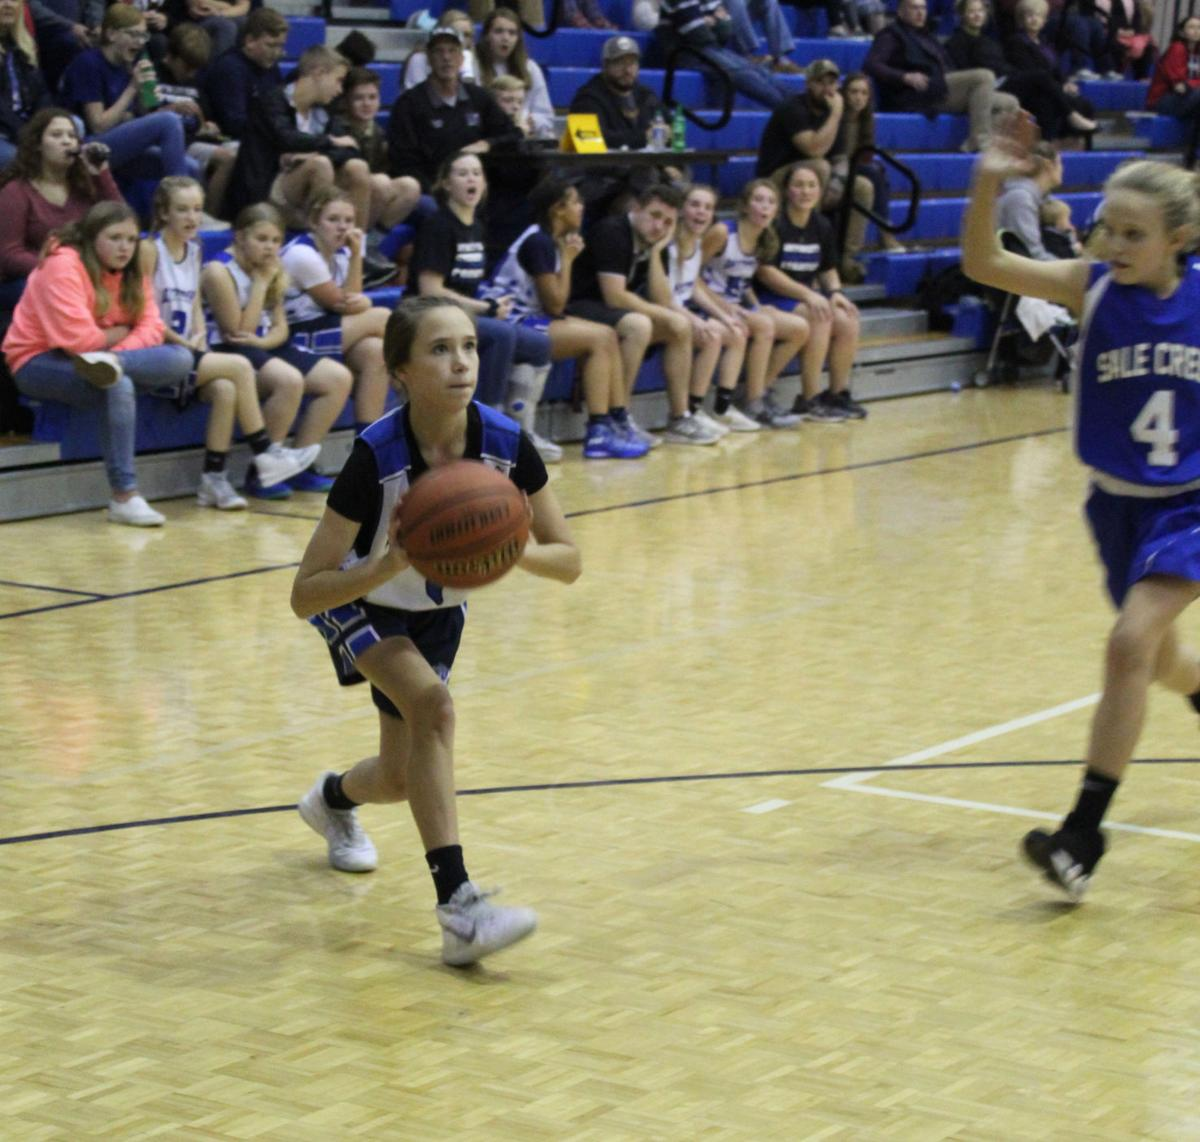 SWEATBEES AVENGE PREVIOUS LOSS TO MEIGS